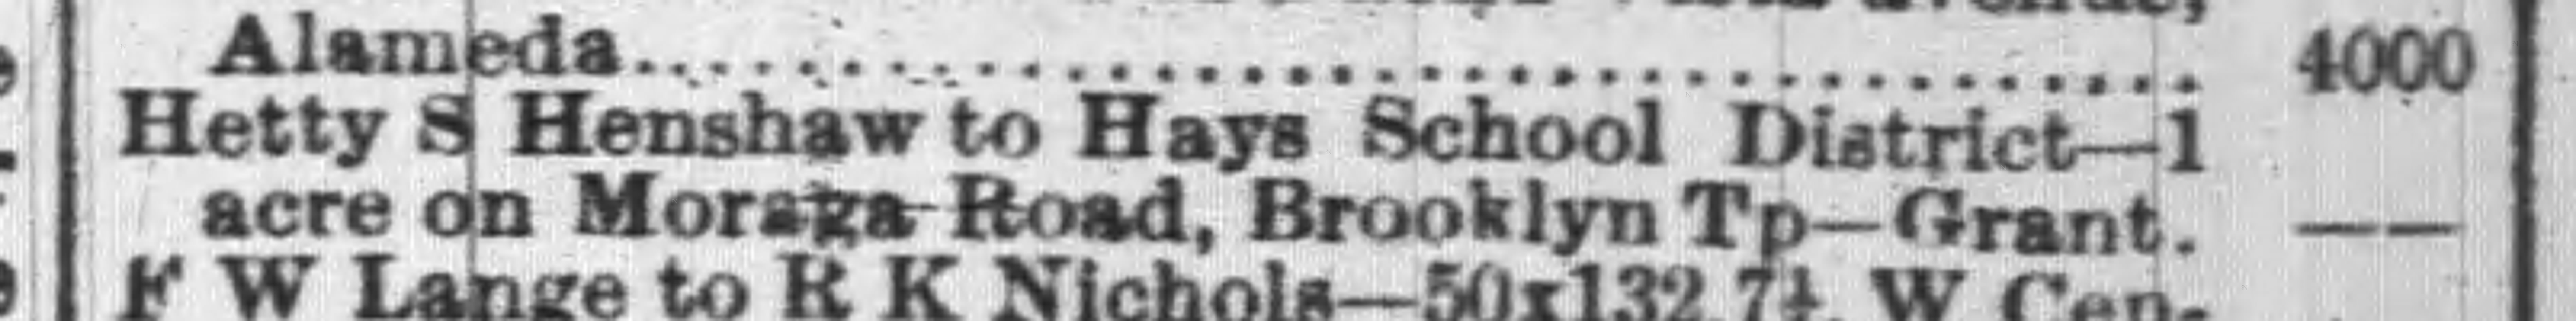 Oakland_Tribune_Fri__Jul_16__1886_